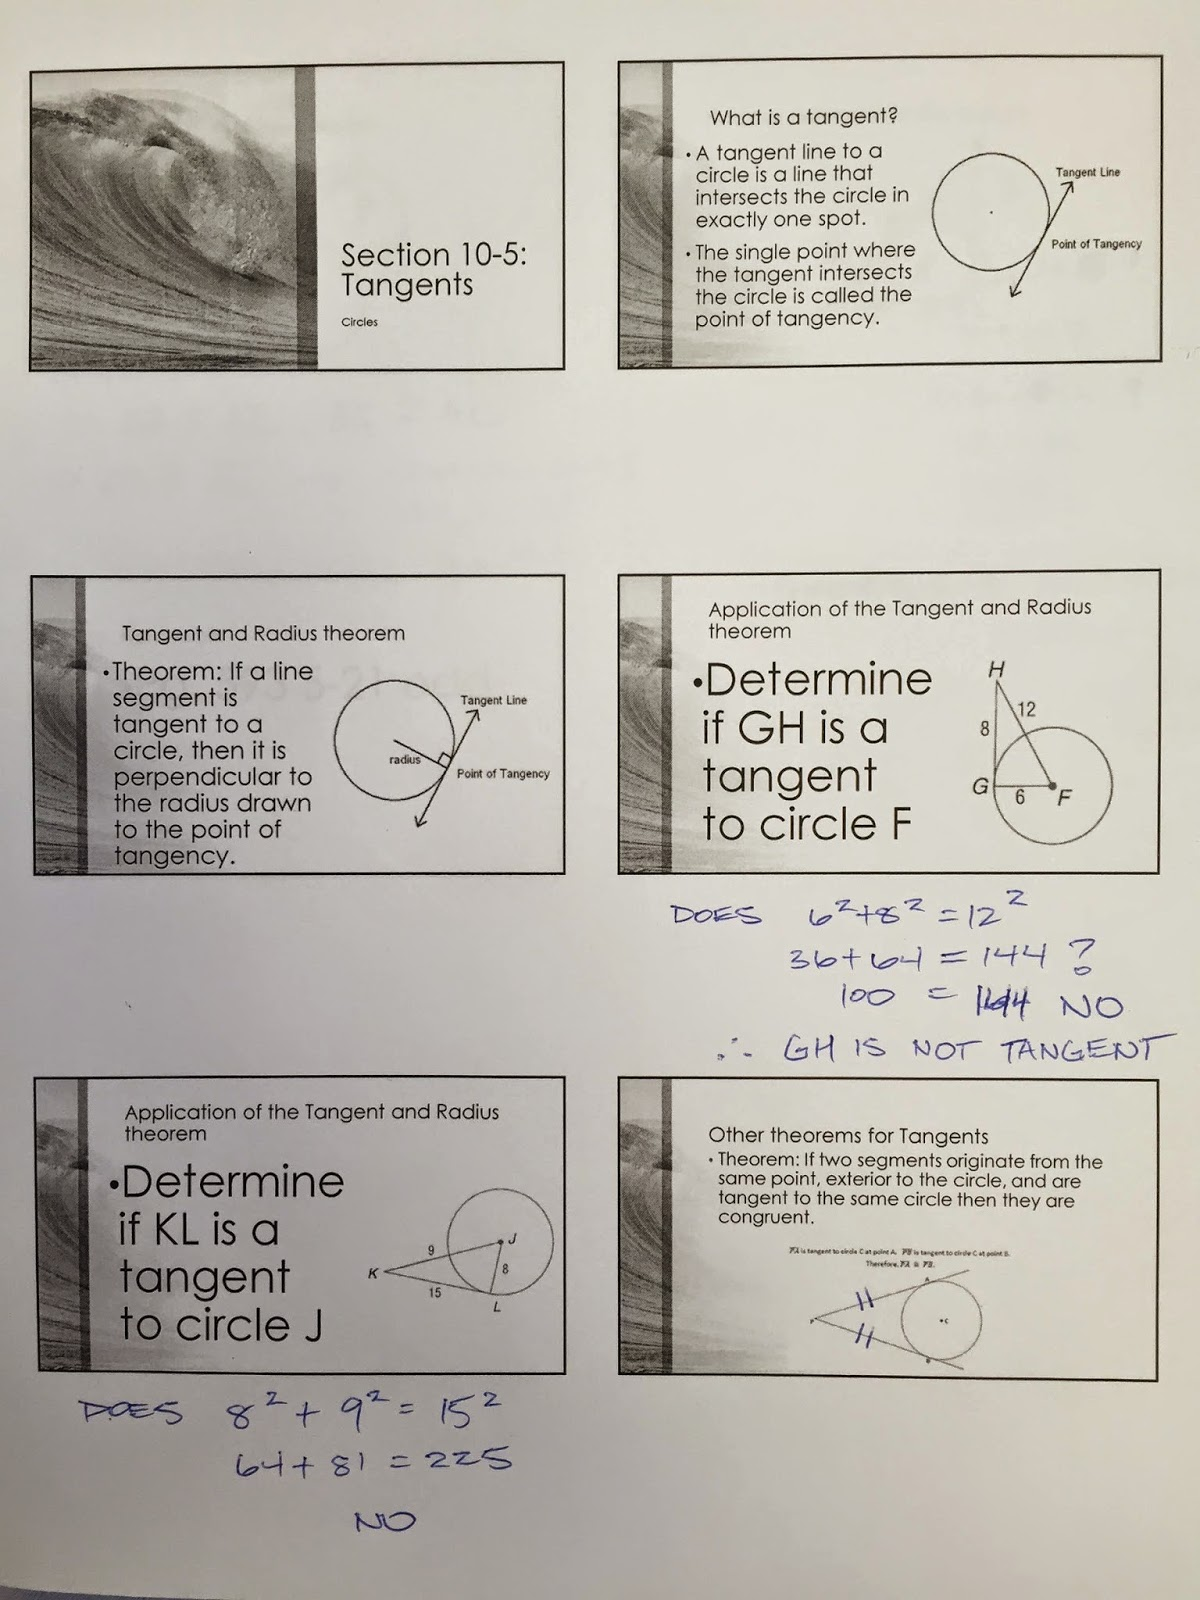 Honors Geometry - Vintage High School: Section 10-5: Tangents